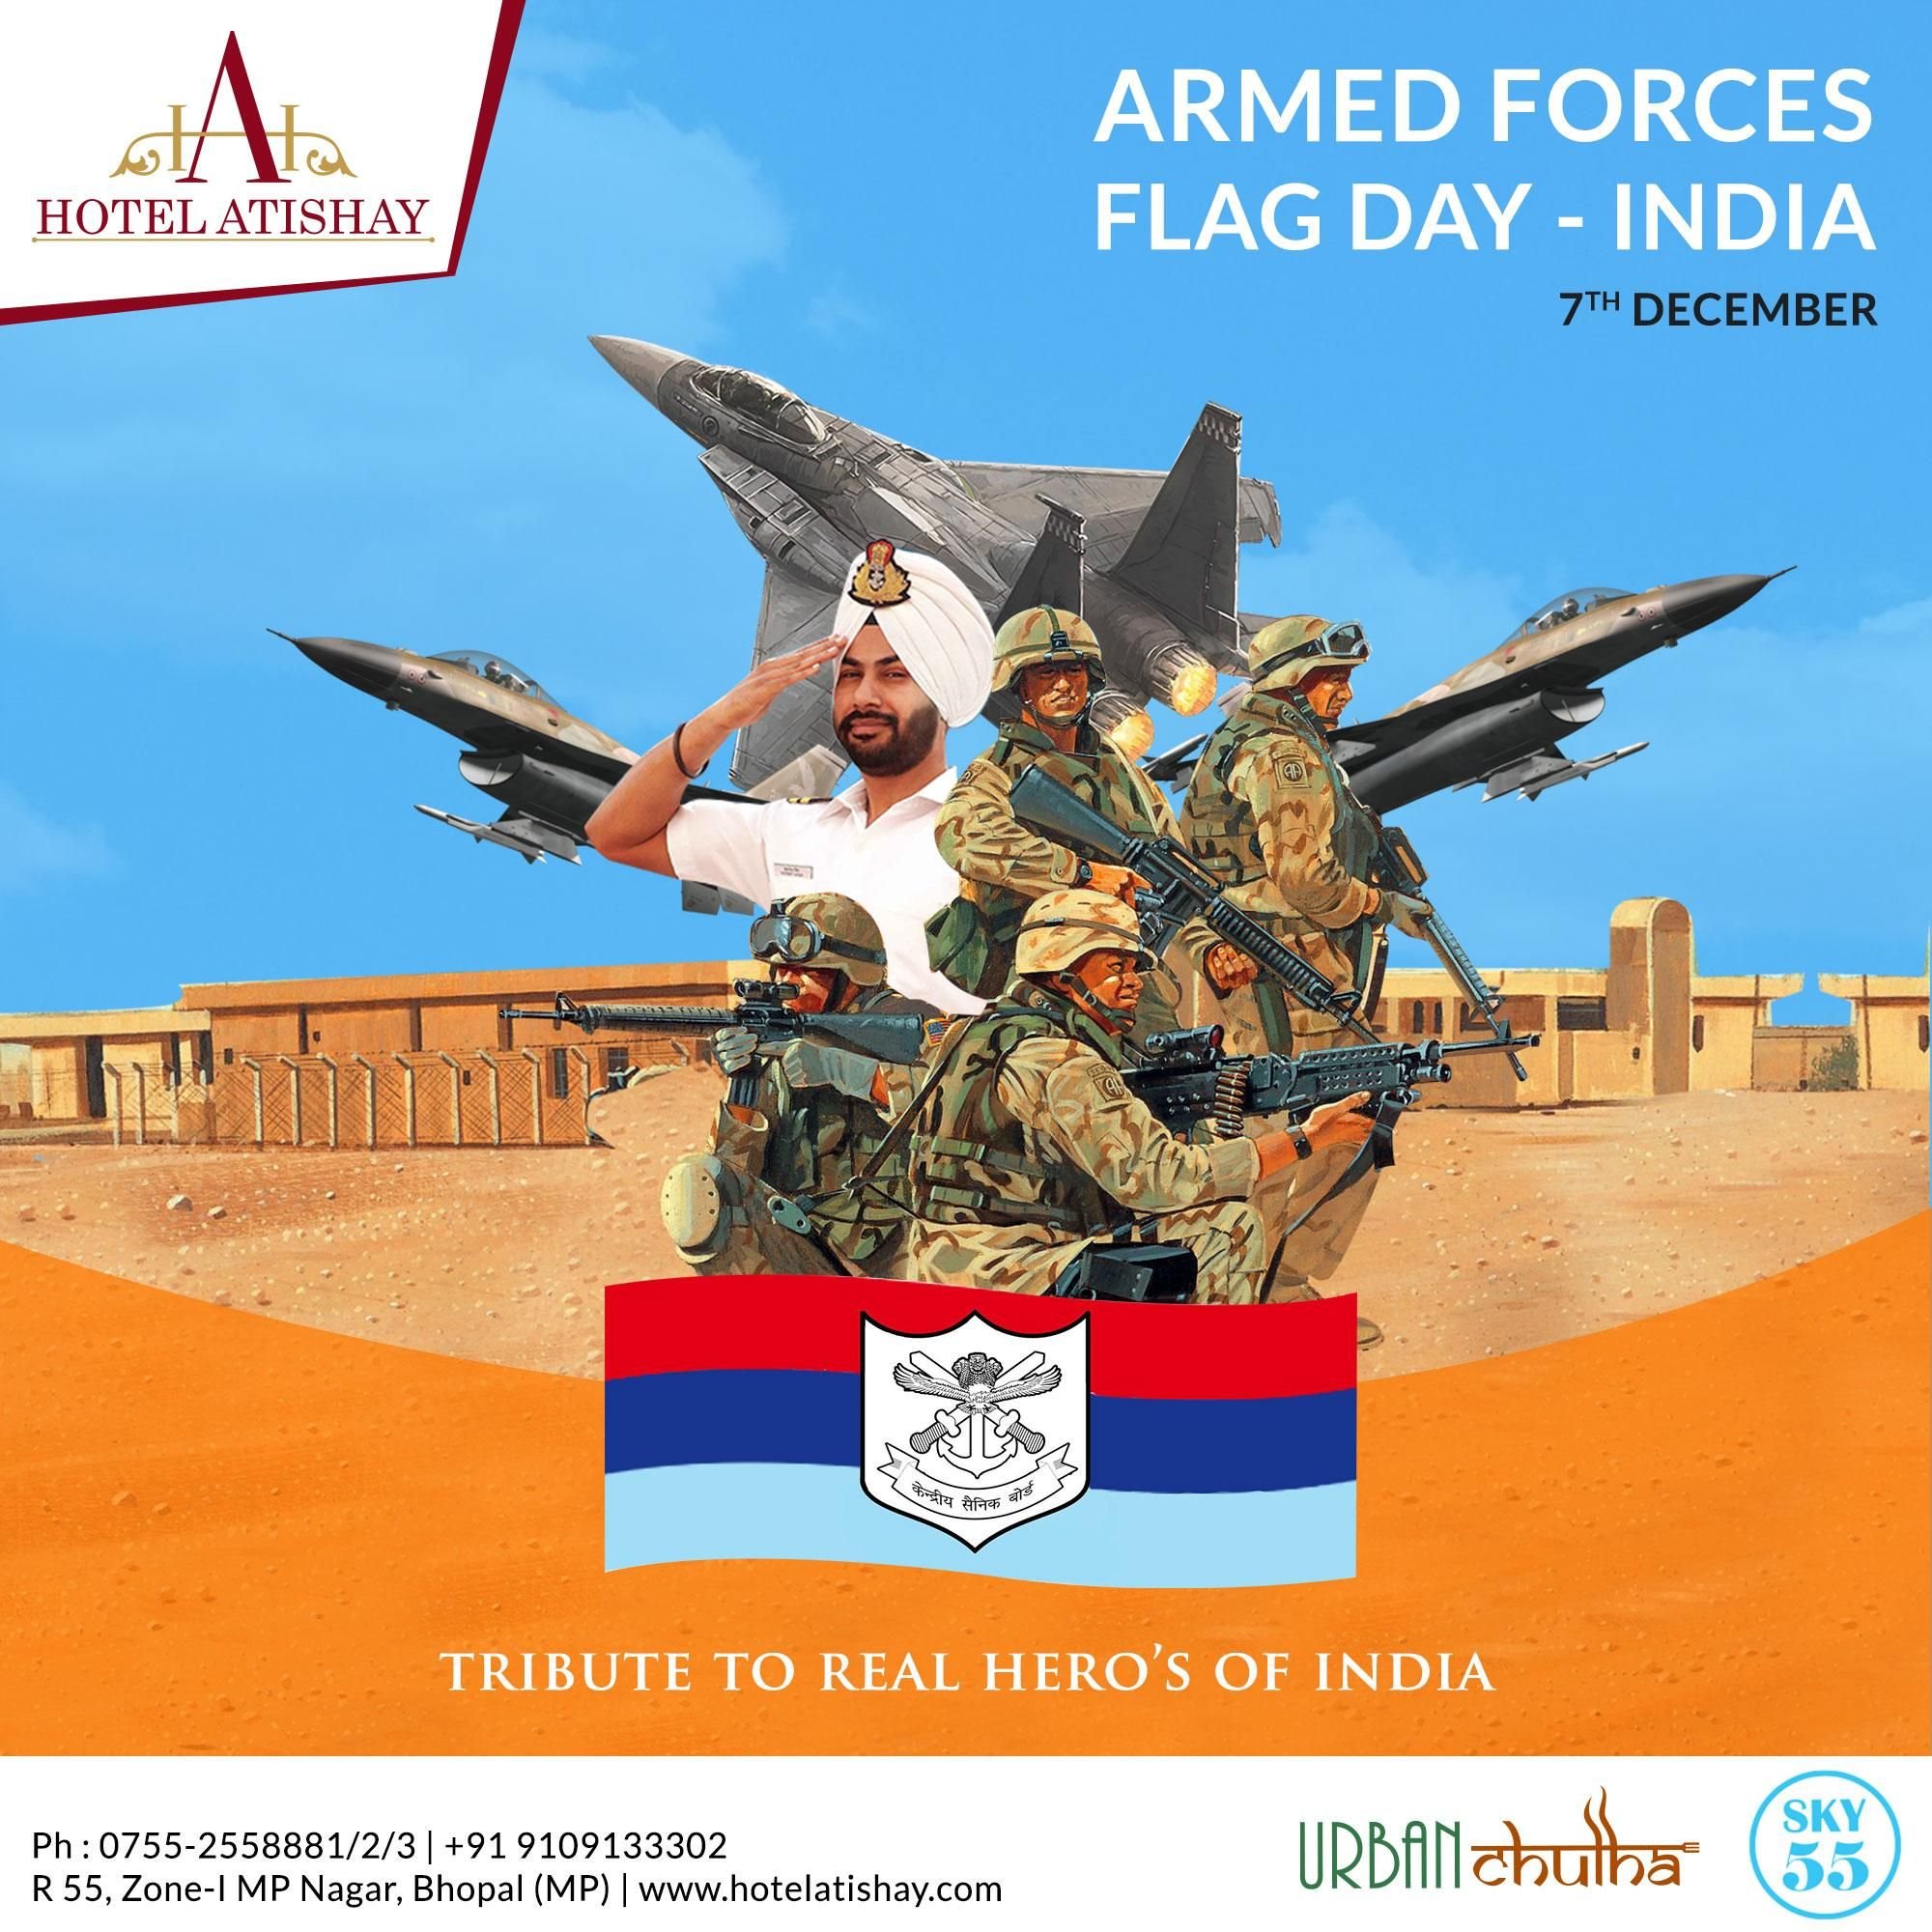 Armed Forces Flag Day Is Commemorated Every Year On 7th December To Mark Solidarity Of The Nation With Our So Armed Forces Flag Day Flag Day India Armed Forces